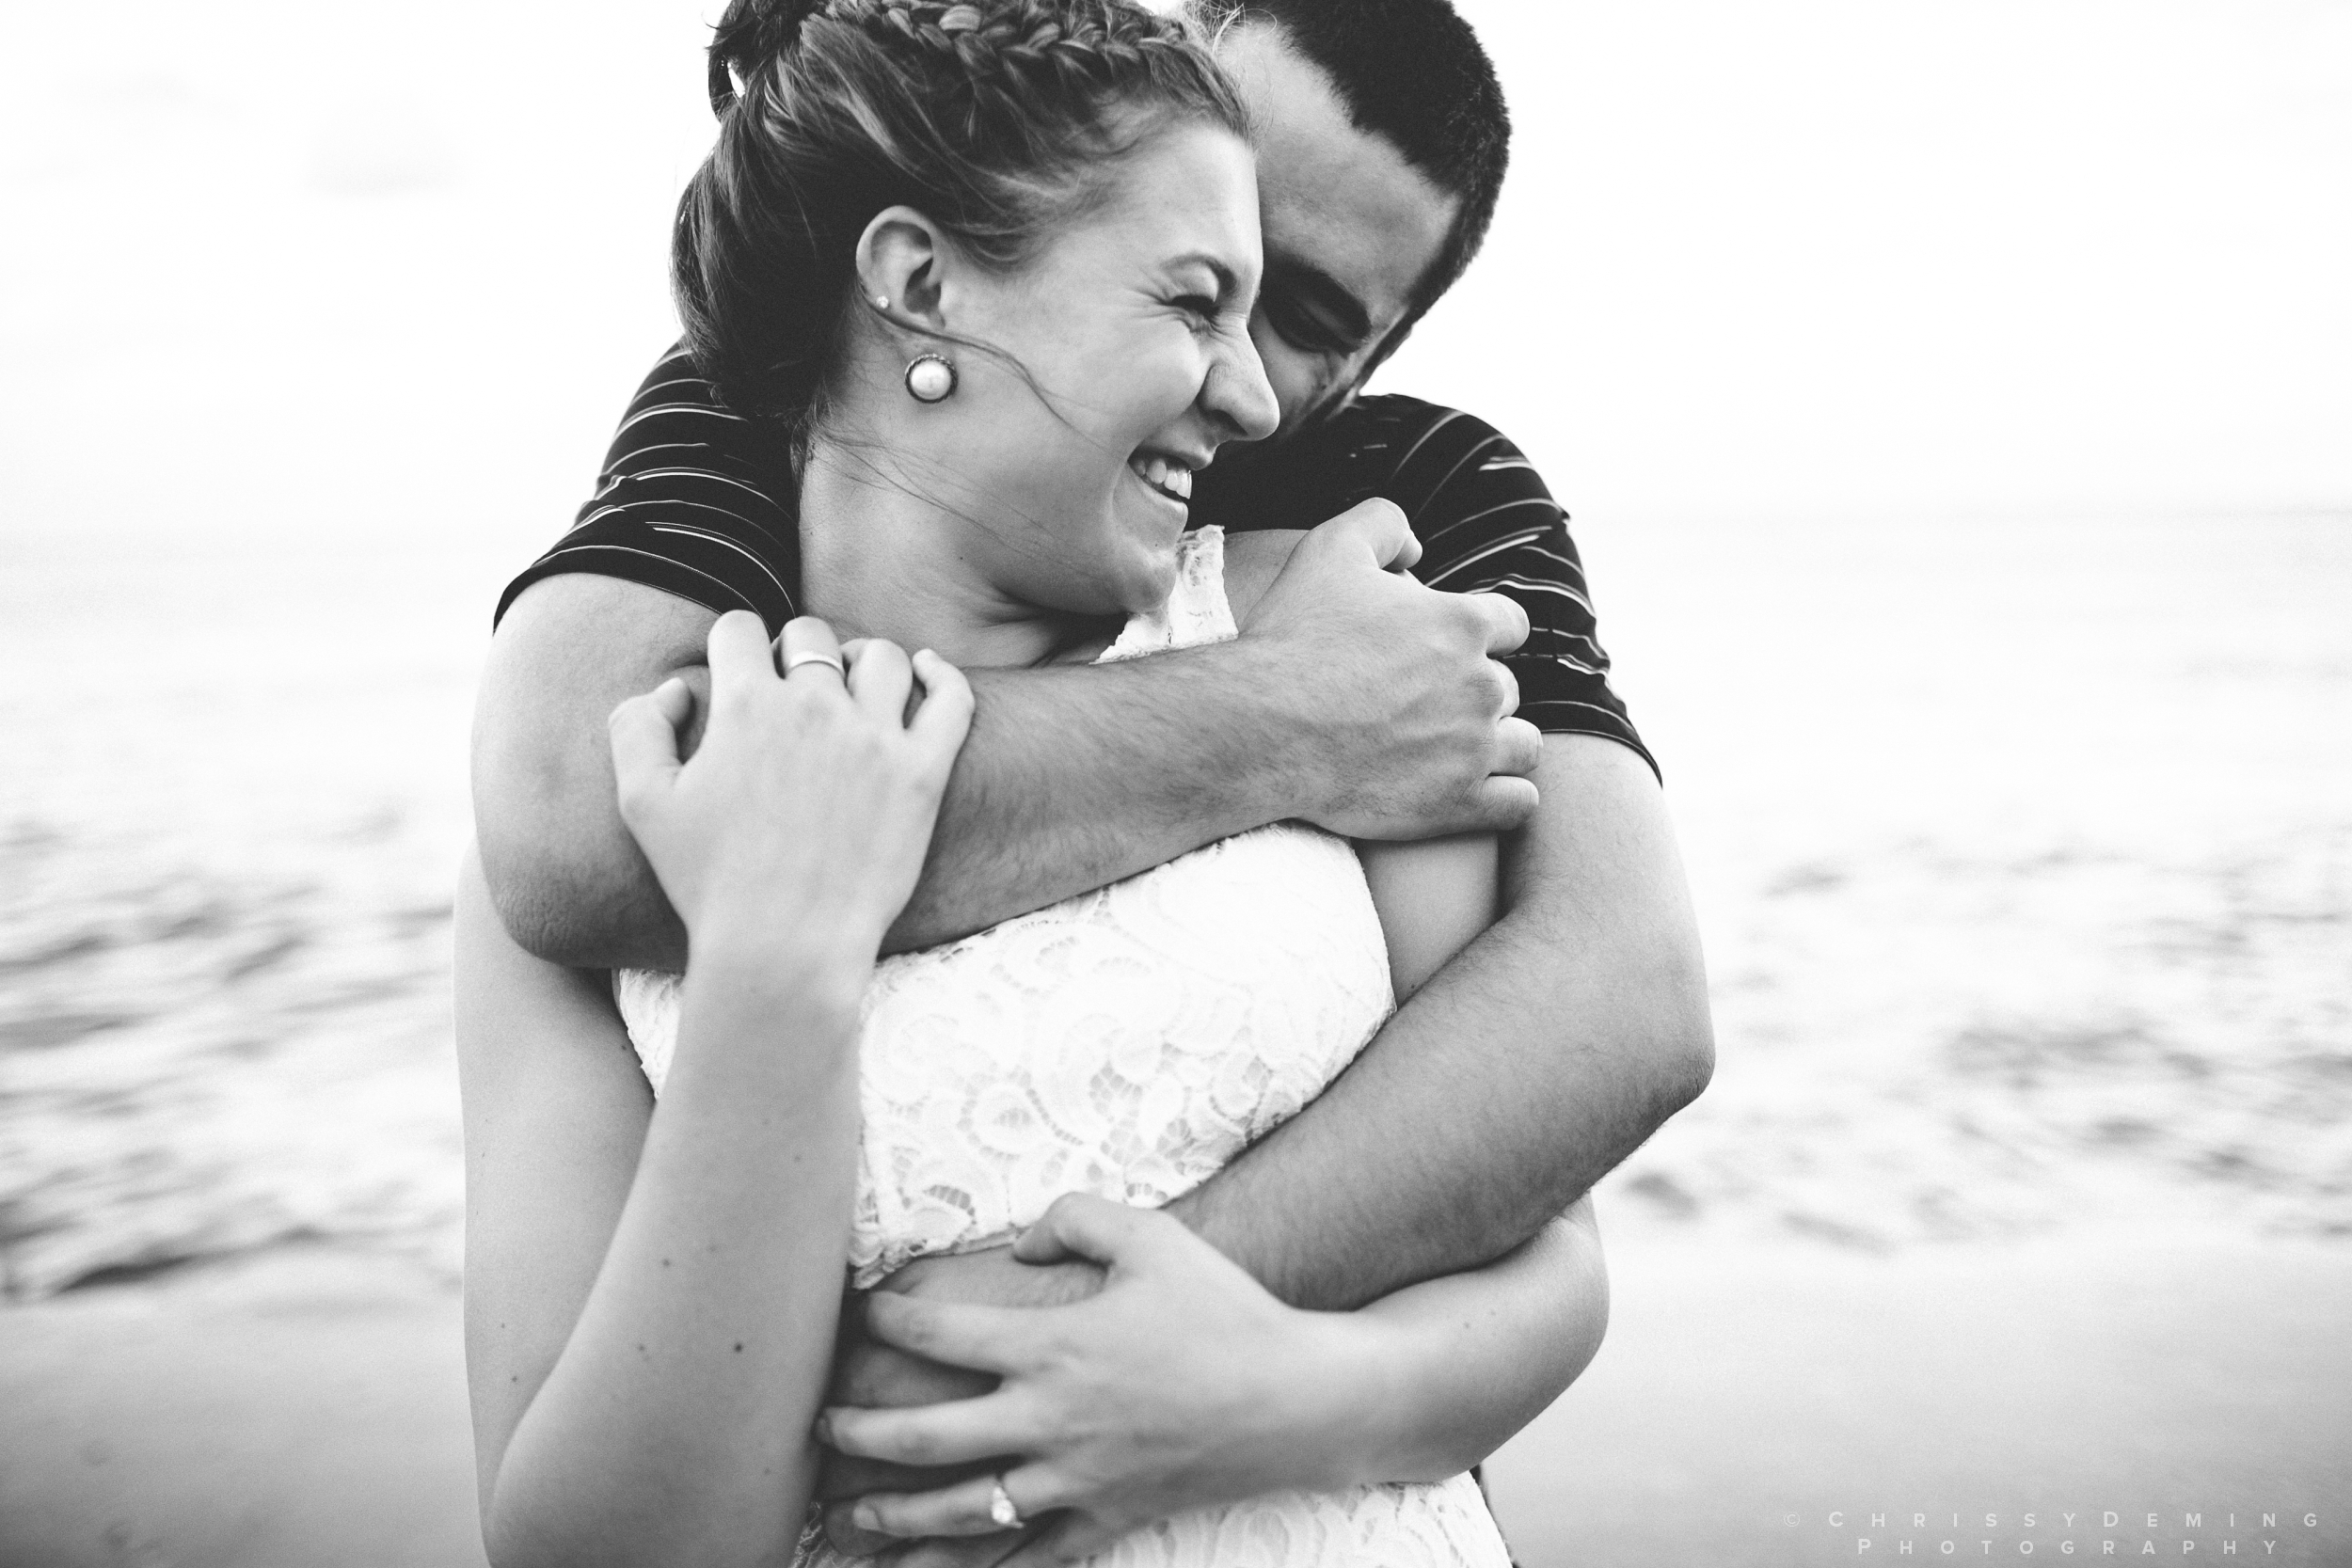 chicago_oakstreetbeach_lincolnpark_engagement_photography_0020.jpg